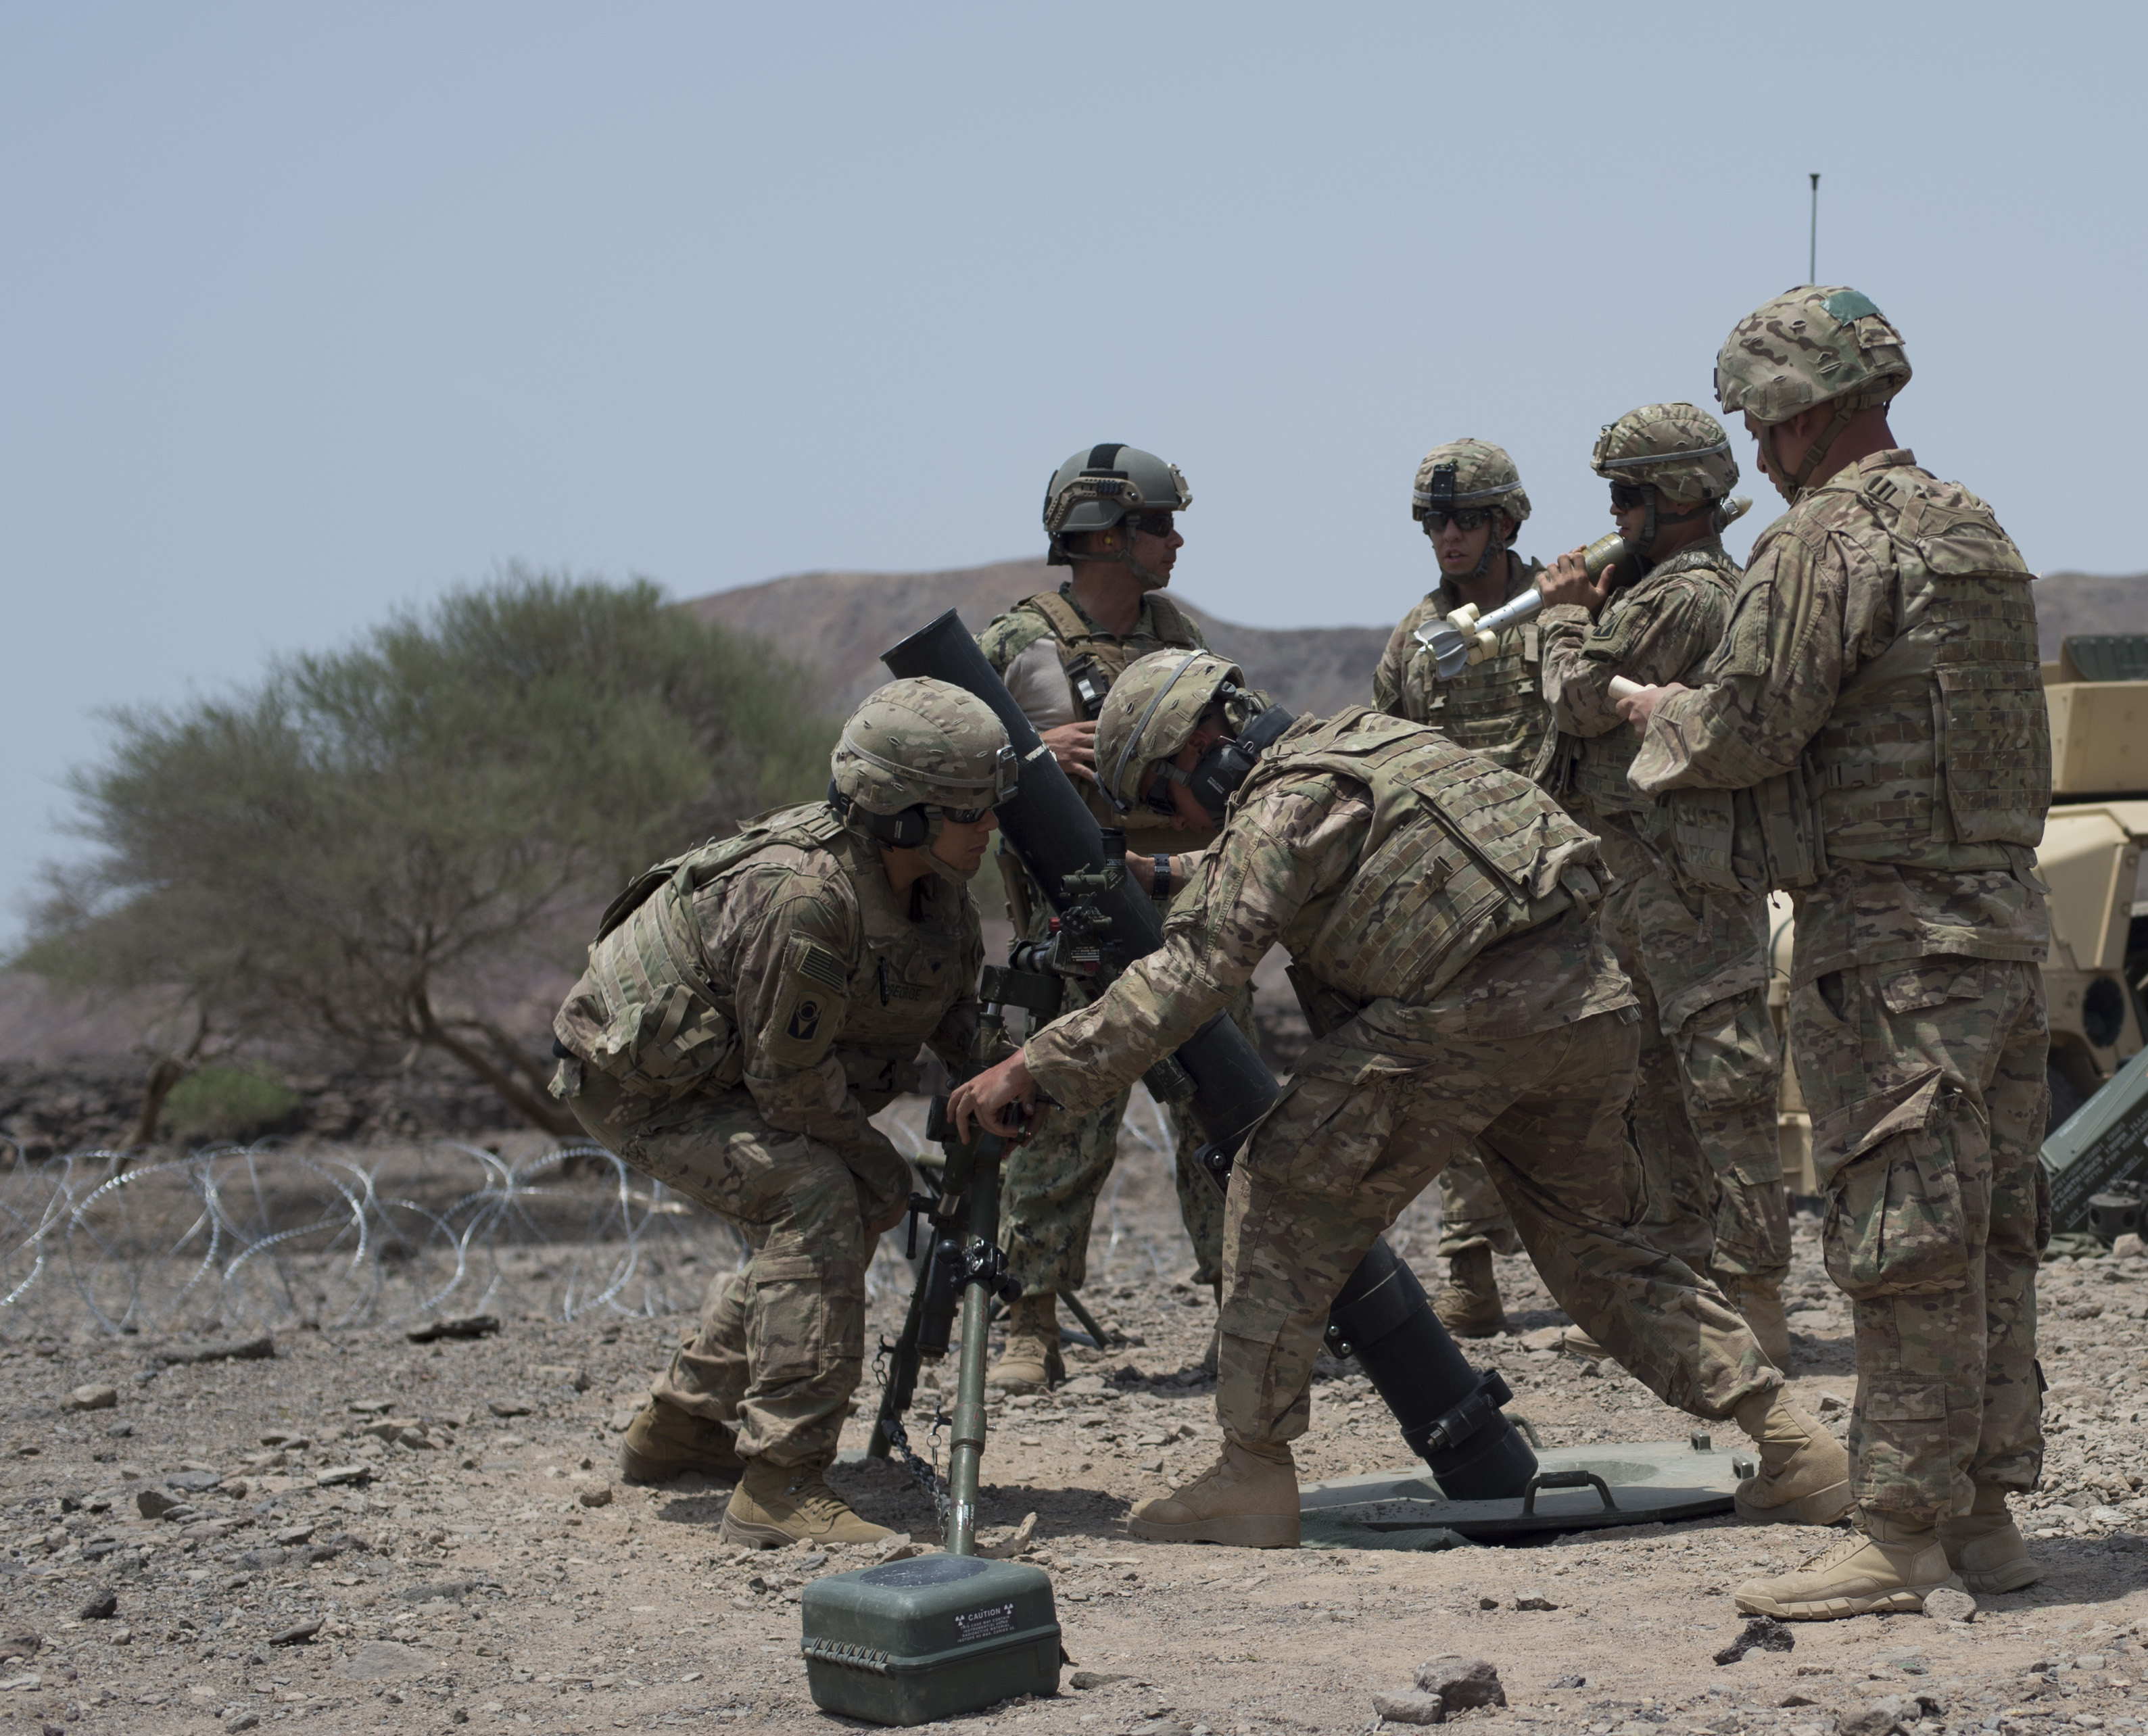 U.S. Army Soldiers from the 1st Battalion, 124th Infantry Regiment, Bravo Company adjusts the trajectory of a mortar launcher before firing a round Aug. 8, 2016, at Arta, Djibouti. The M252 cannon system has a range of 7,500 meters or approximately 4.5 miles. The 1-124 is a guard unit deployed from Cocoa, Fla., to Combined Joint Task Force-Horn of Africa. (U.S. Air Force Air Force photo by Staff Sgt. Eric Summers Jr./Released)